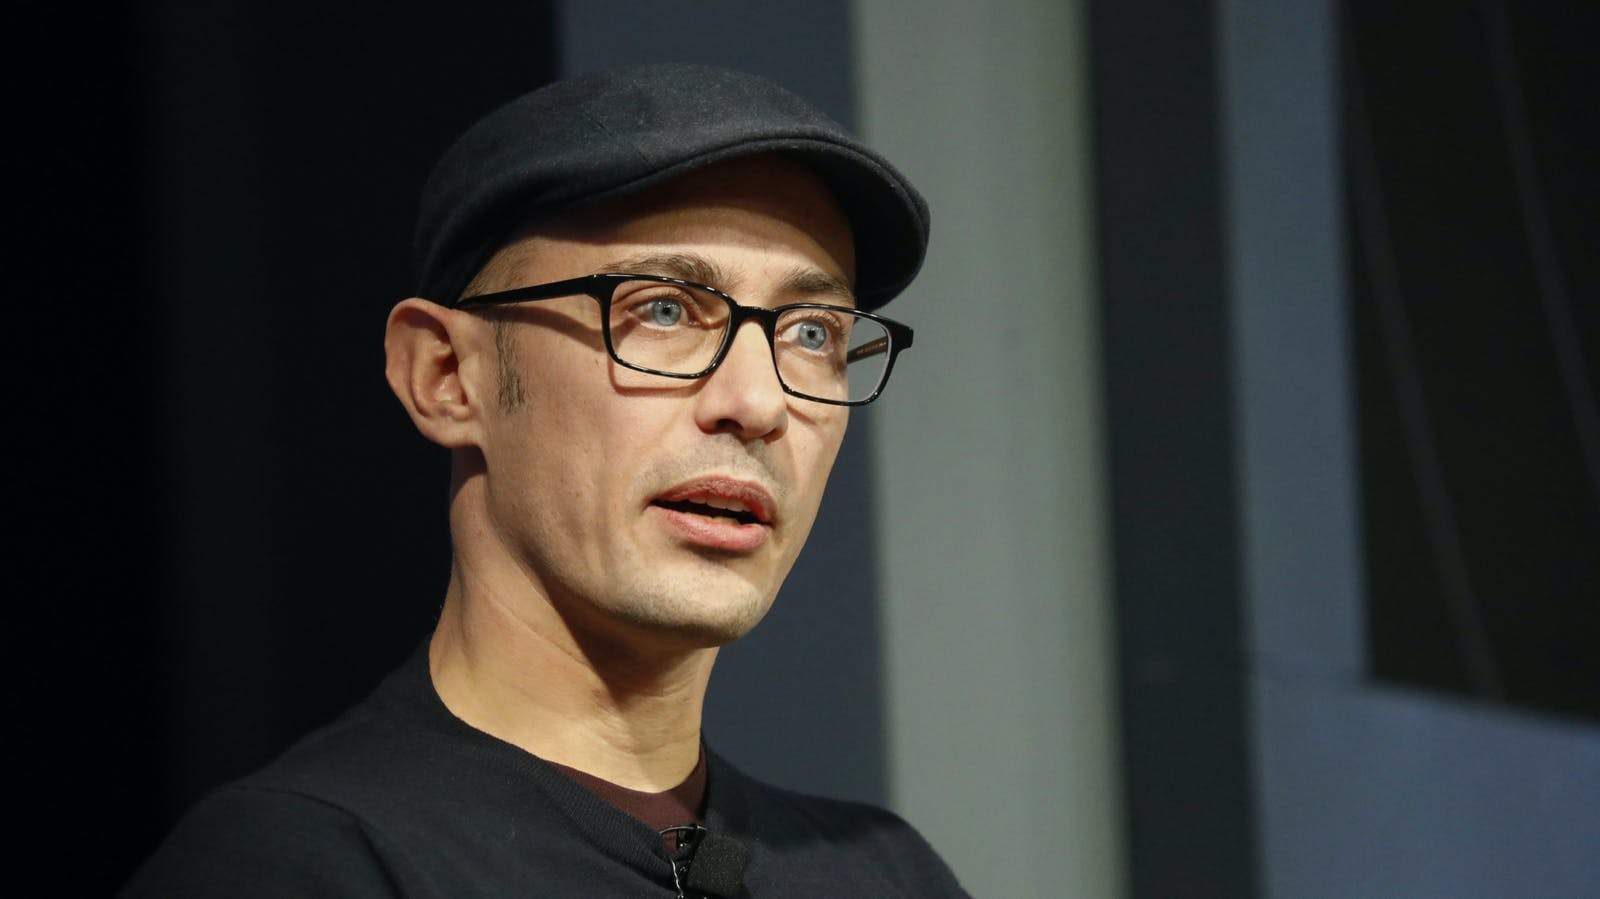 Shopify CEO and co-founder Tobias Lütke. Photo by Bloomberg